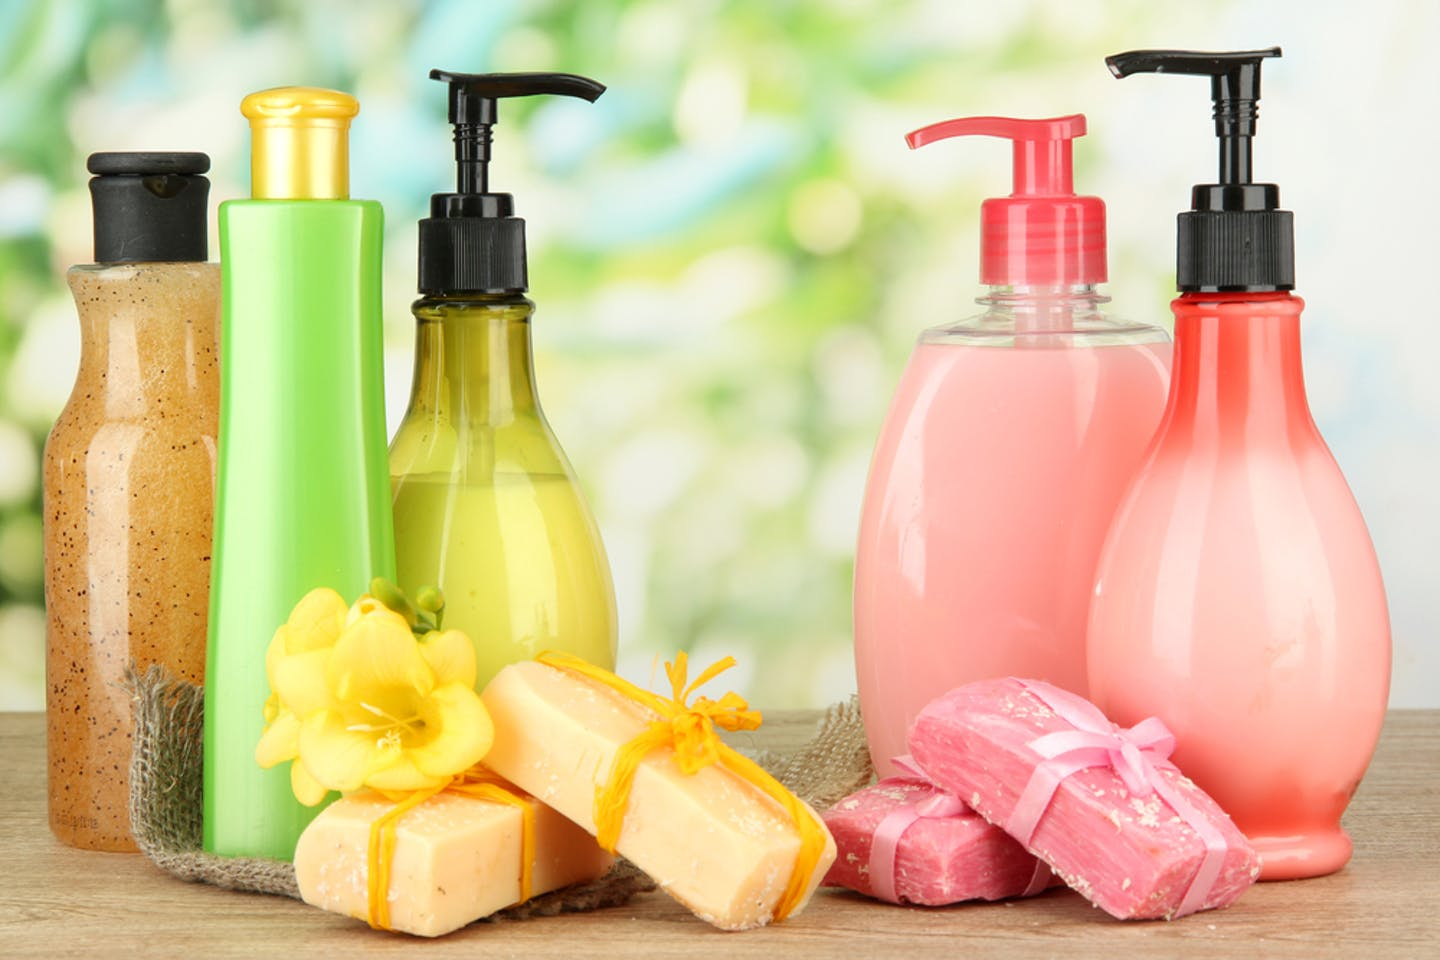 It's time for the personal care industry to clean up its act | Opinion |  Eco-Business | Asia Pacific